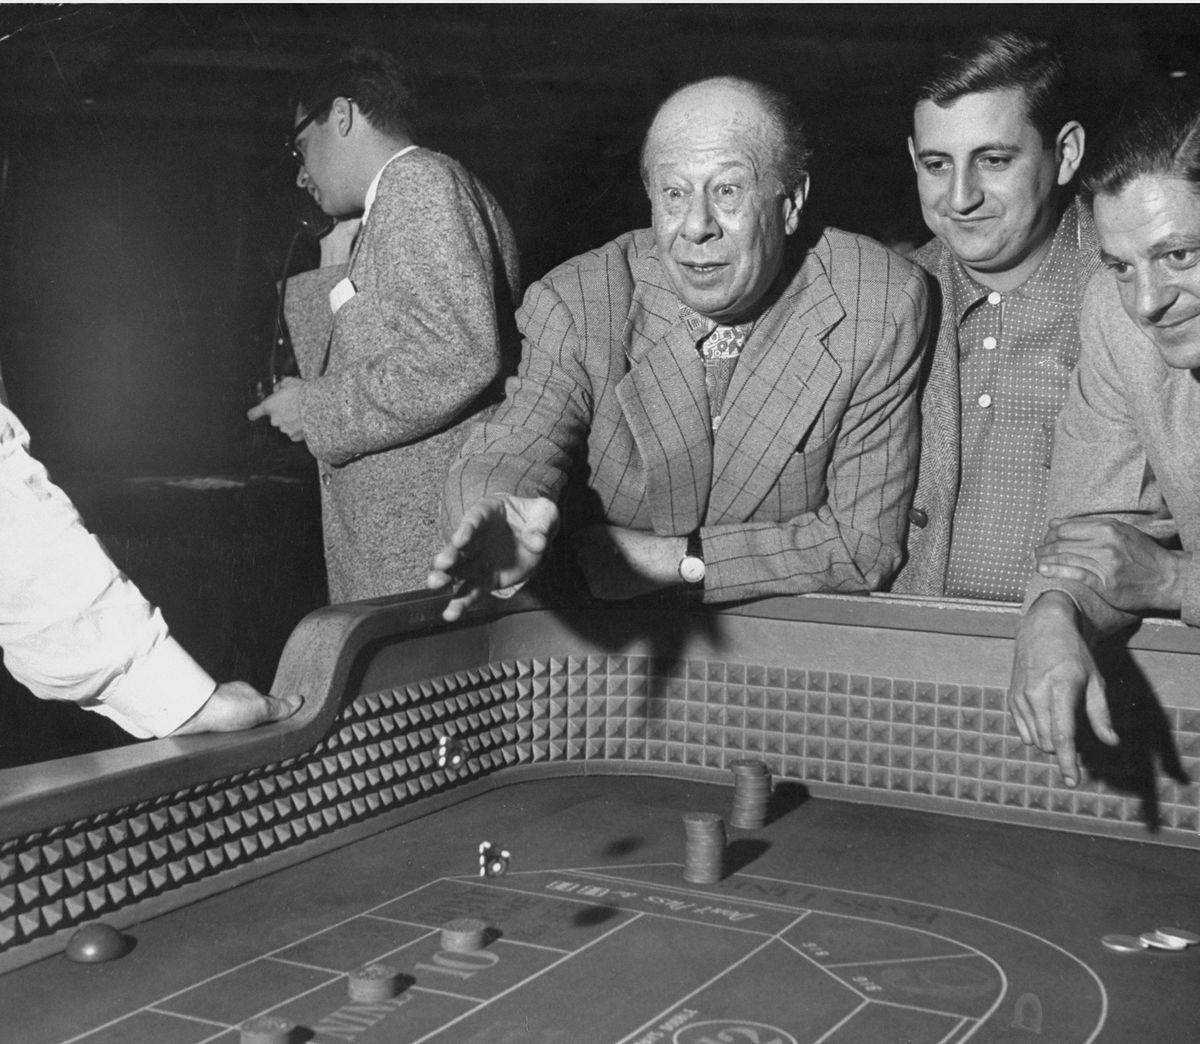 Slide 18 of 50: Bert Lahr plays dice in 1952. He is best known for his role as the Cowardly Lion in The Wizard of Oz.